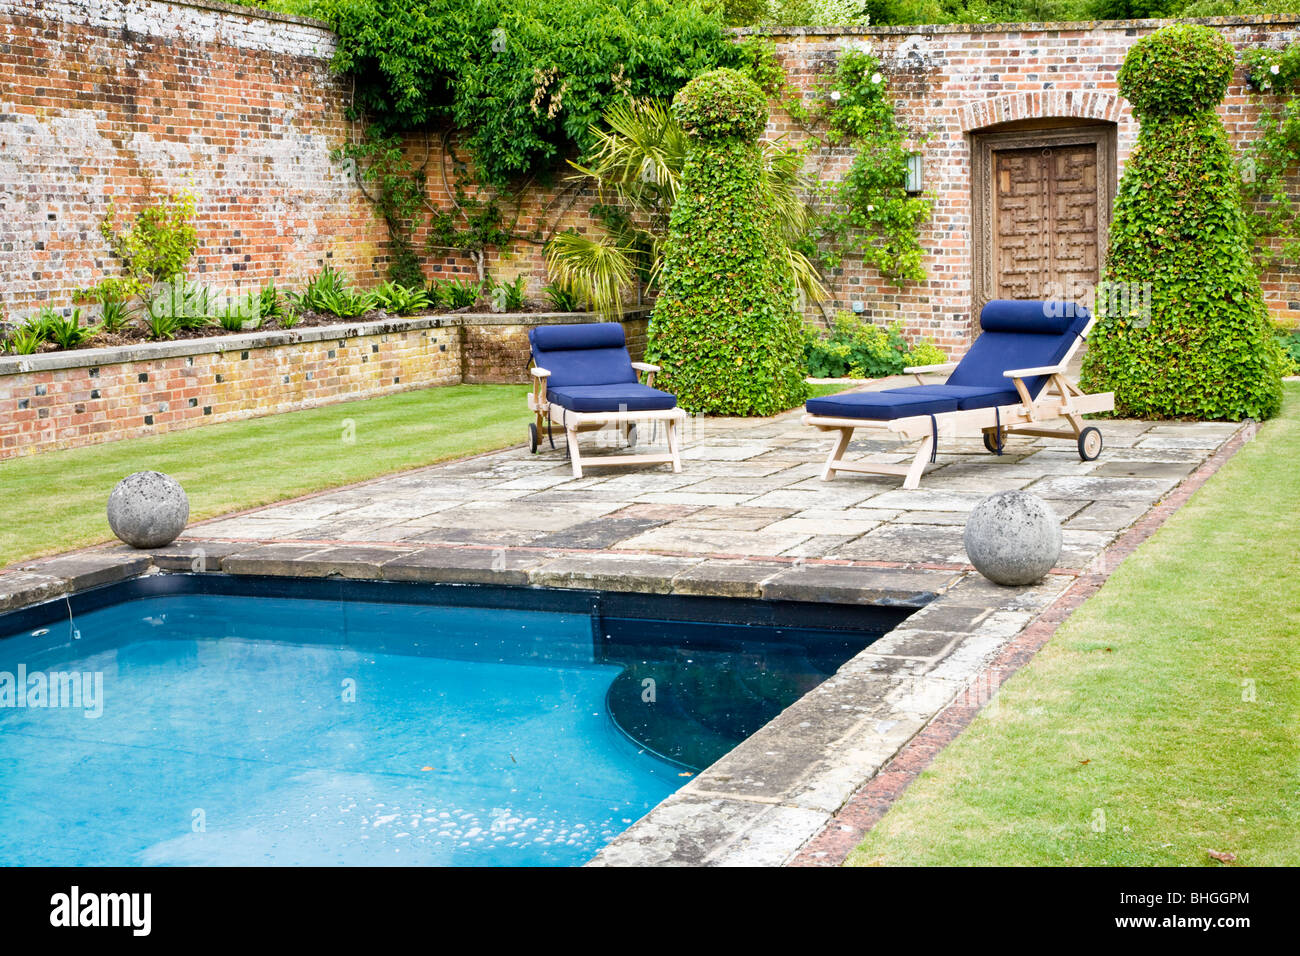 Swimming pool in a walled garden in the grounds of an for Garden city pool hours